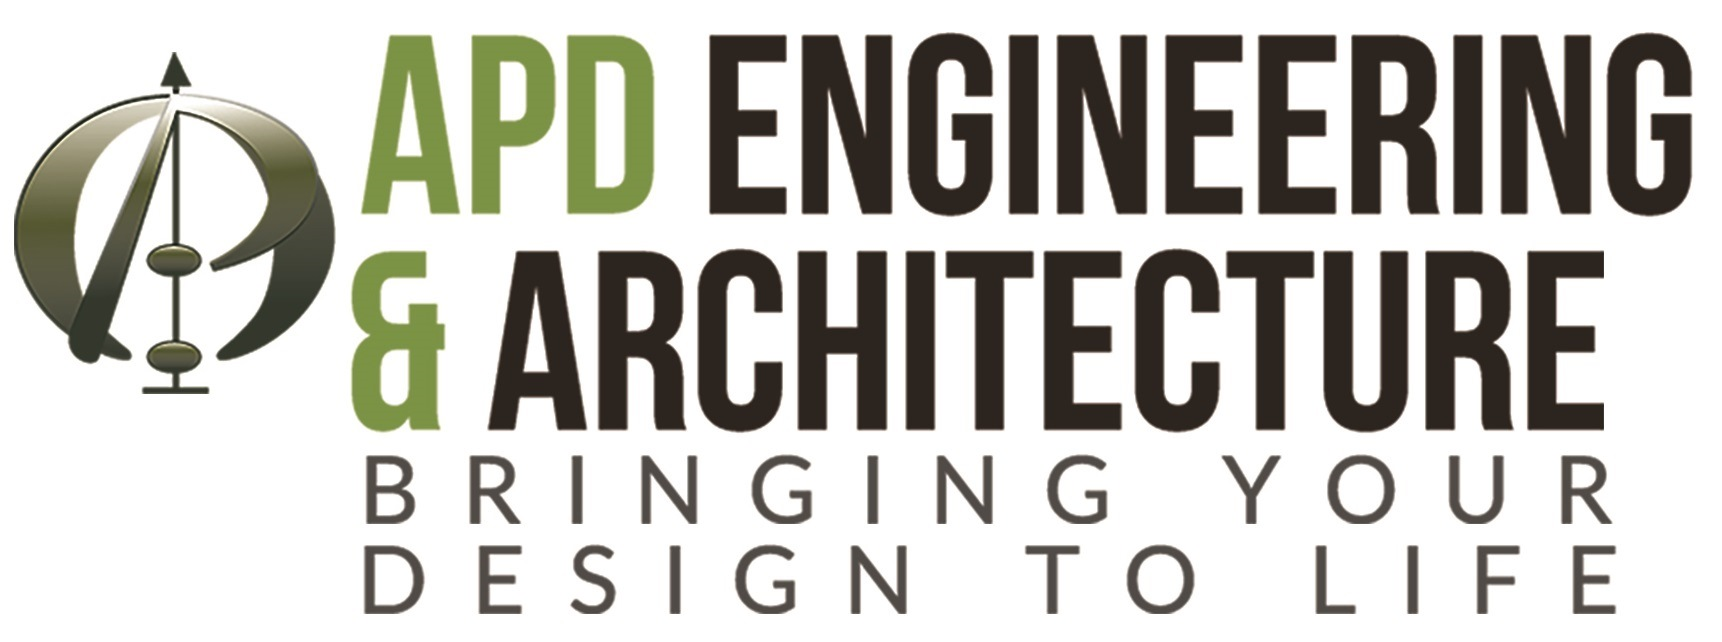 APD Engineering and Architecture